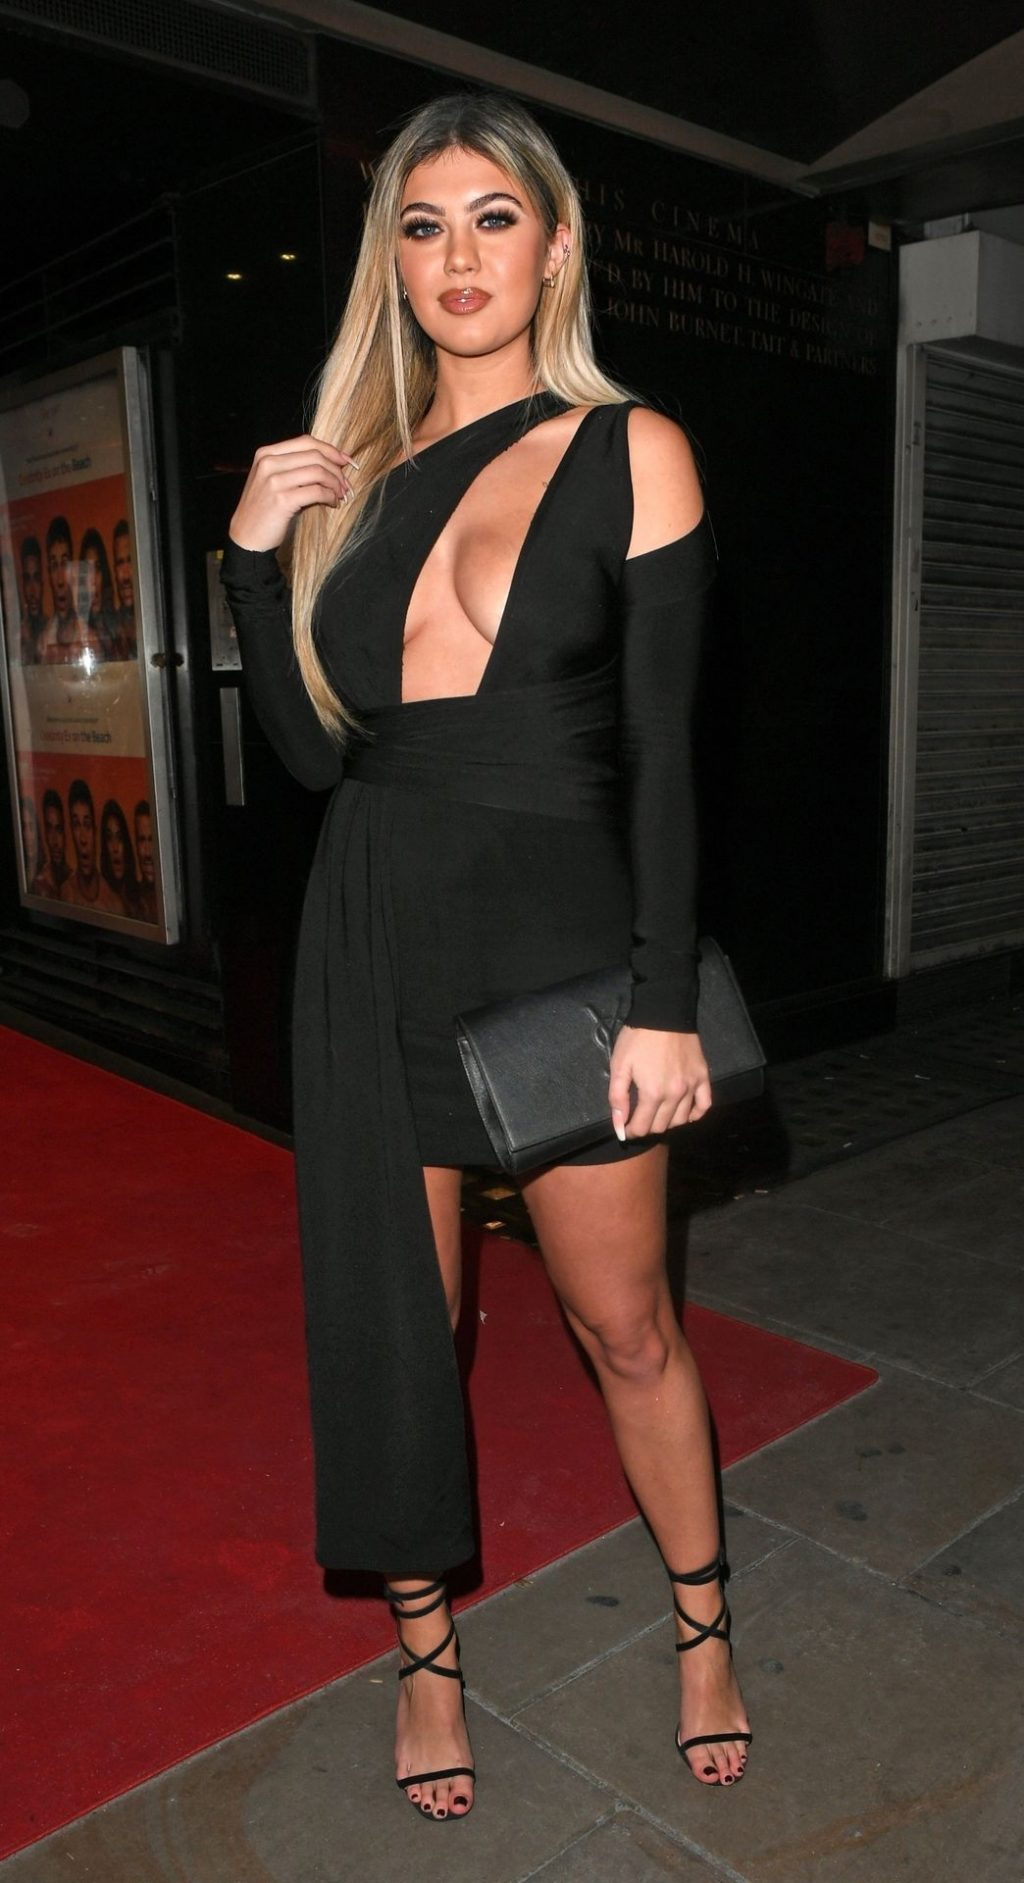 Belle Hassan Shows Off Her Cleavage in London (17 Photos)